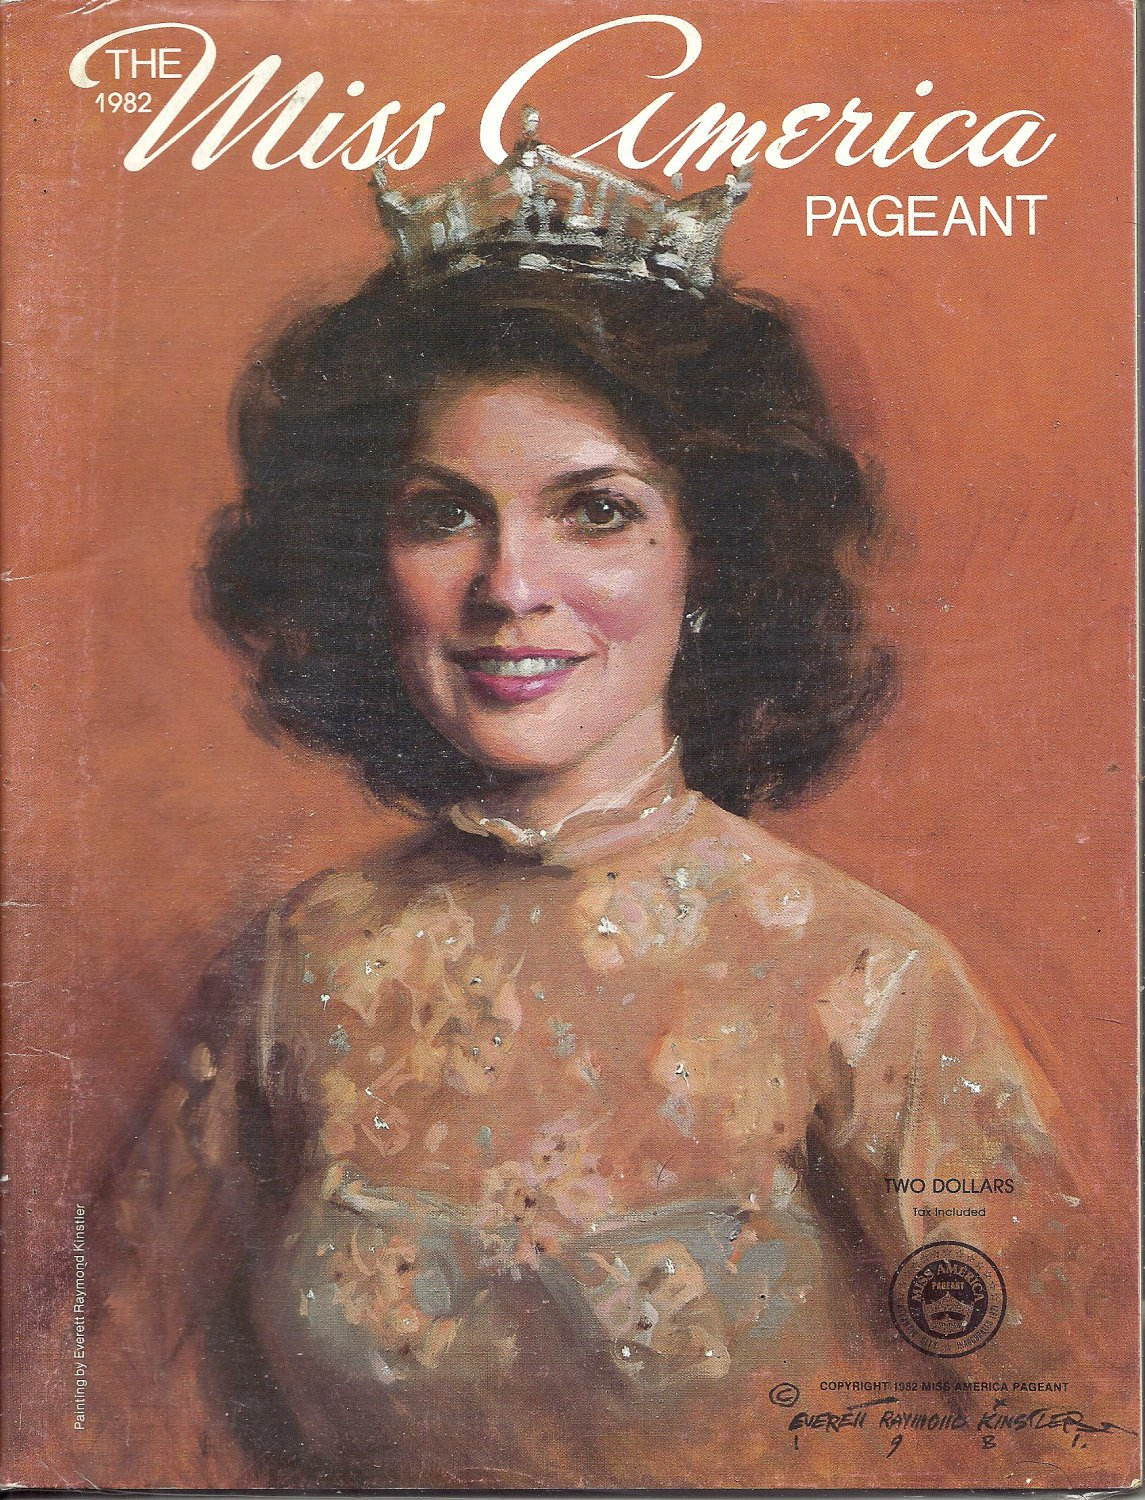 1982 Vintage Magazine Program: The Miss America Pageant 1982